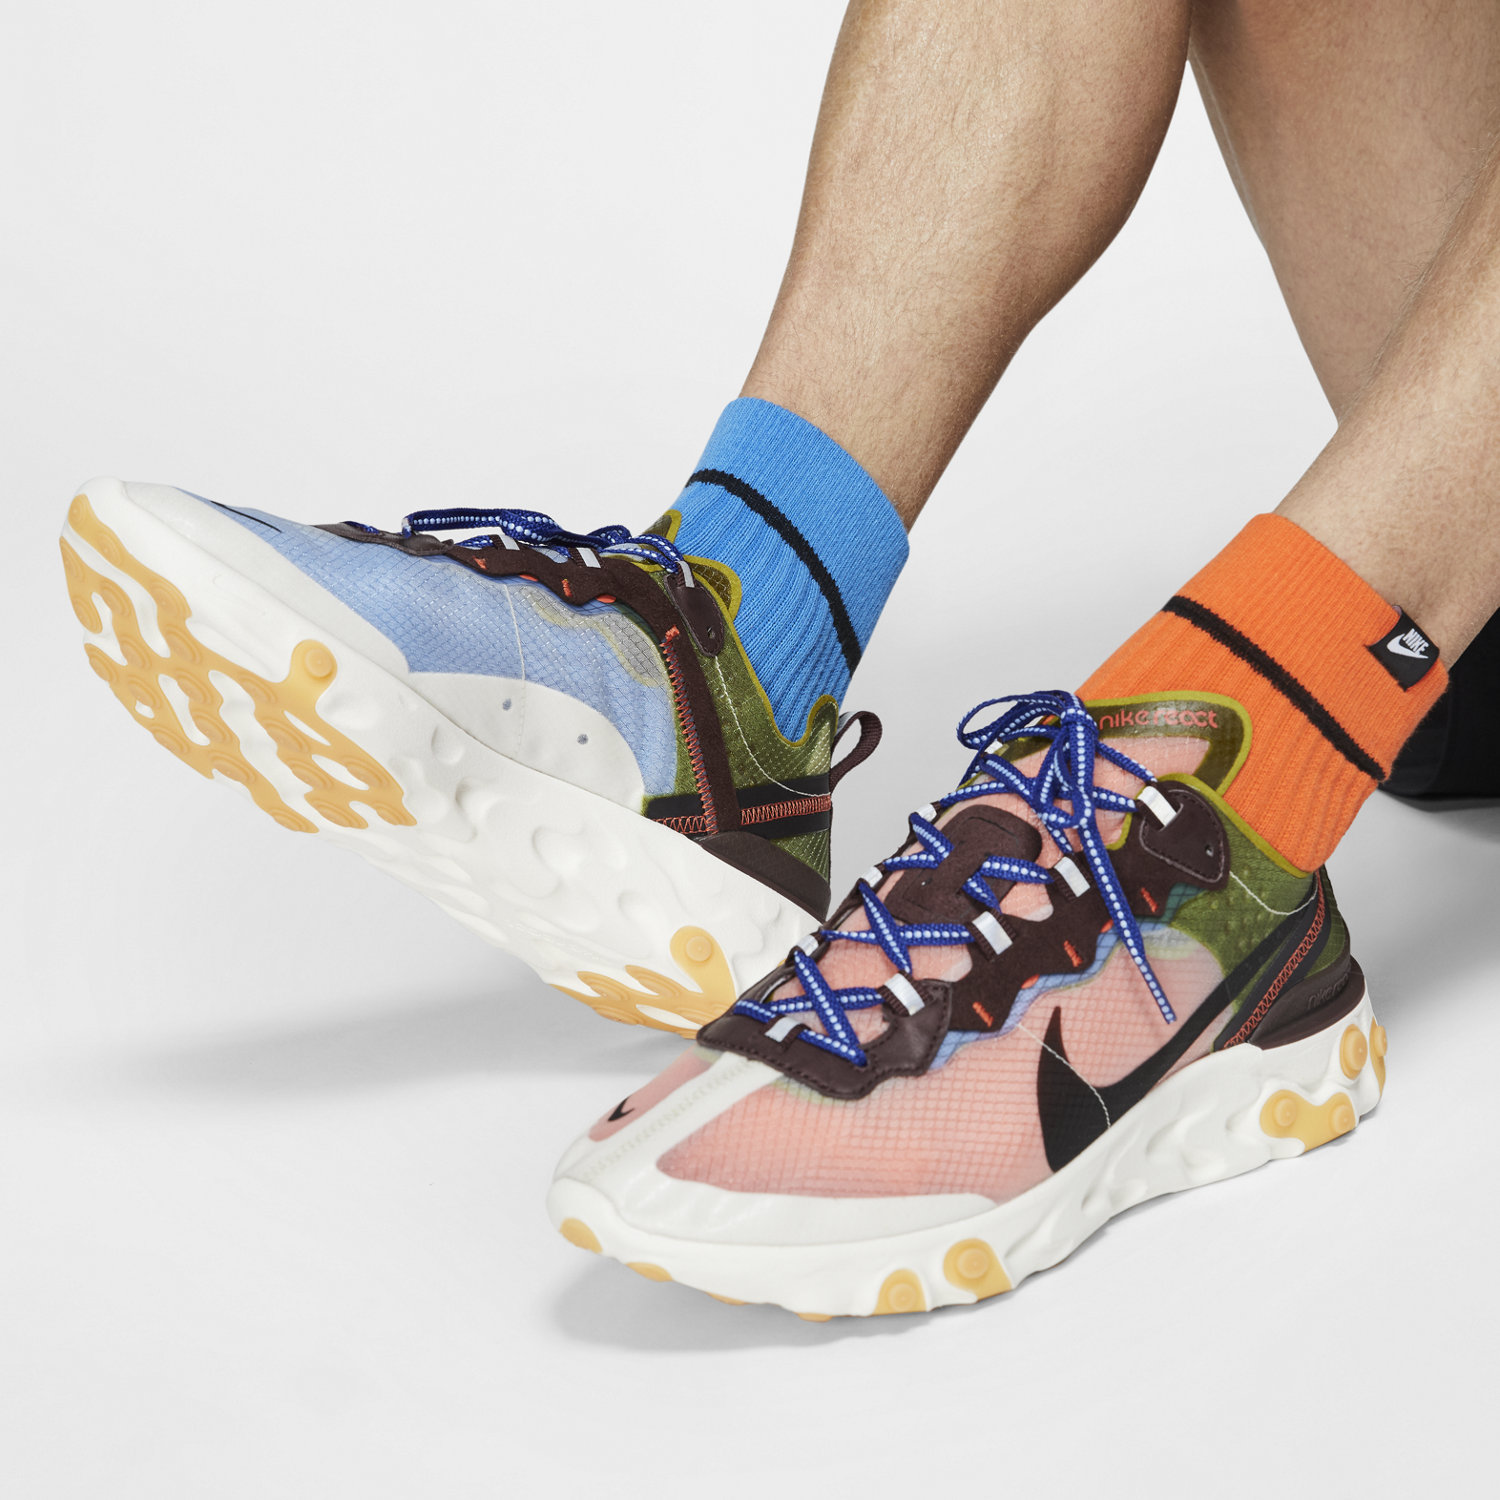 innovative design various colors attractive price Chaussure Nike React Element 87 pour Homme